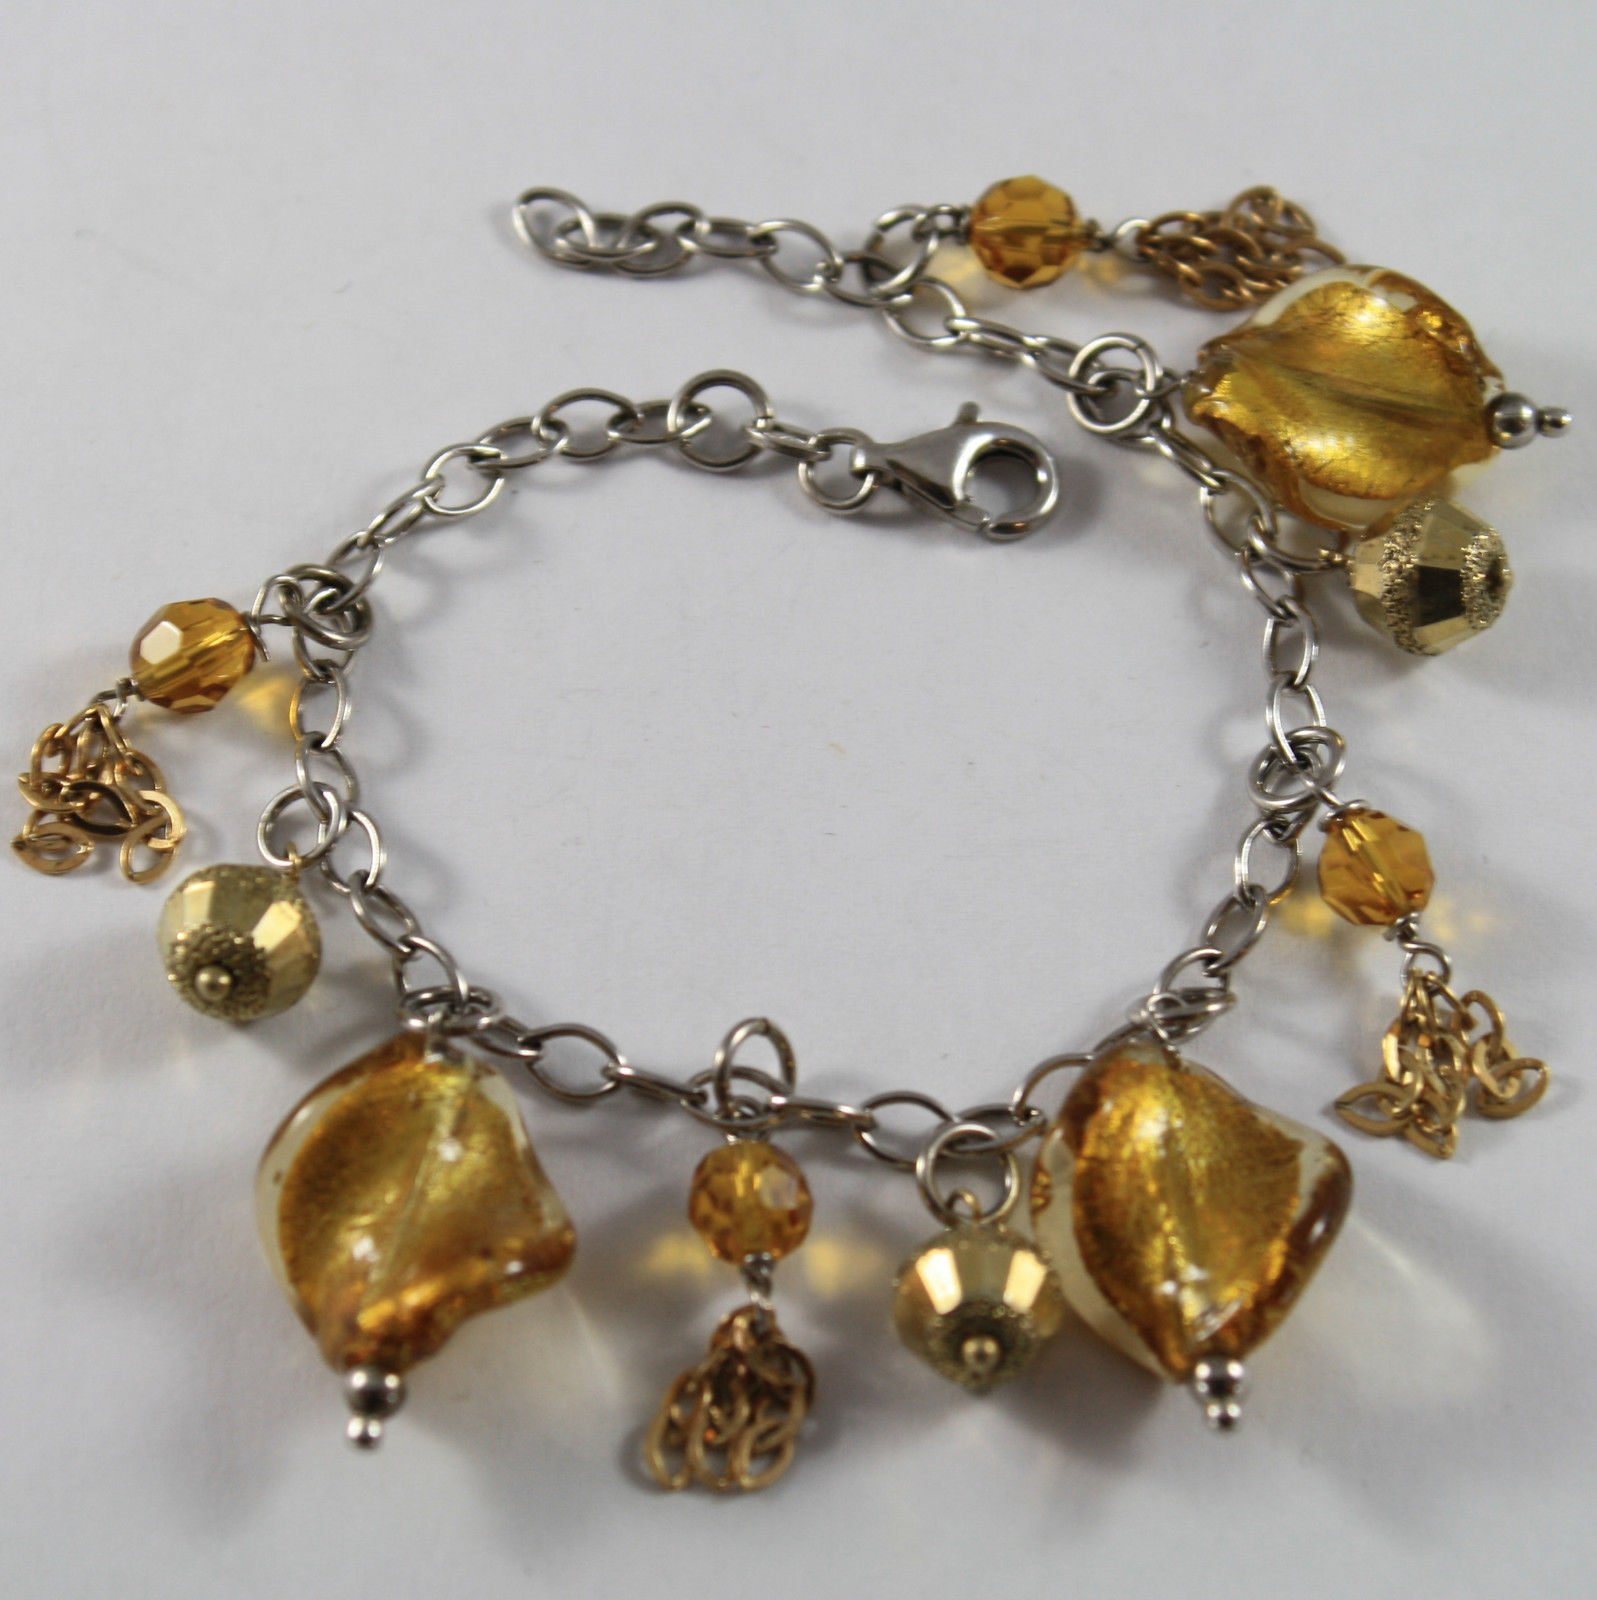 .925 RHODIUM SILVER BRACELET WITH GOLDEN SPHERE, YELLOW CRISTAL AND MURRINA